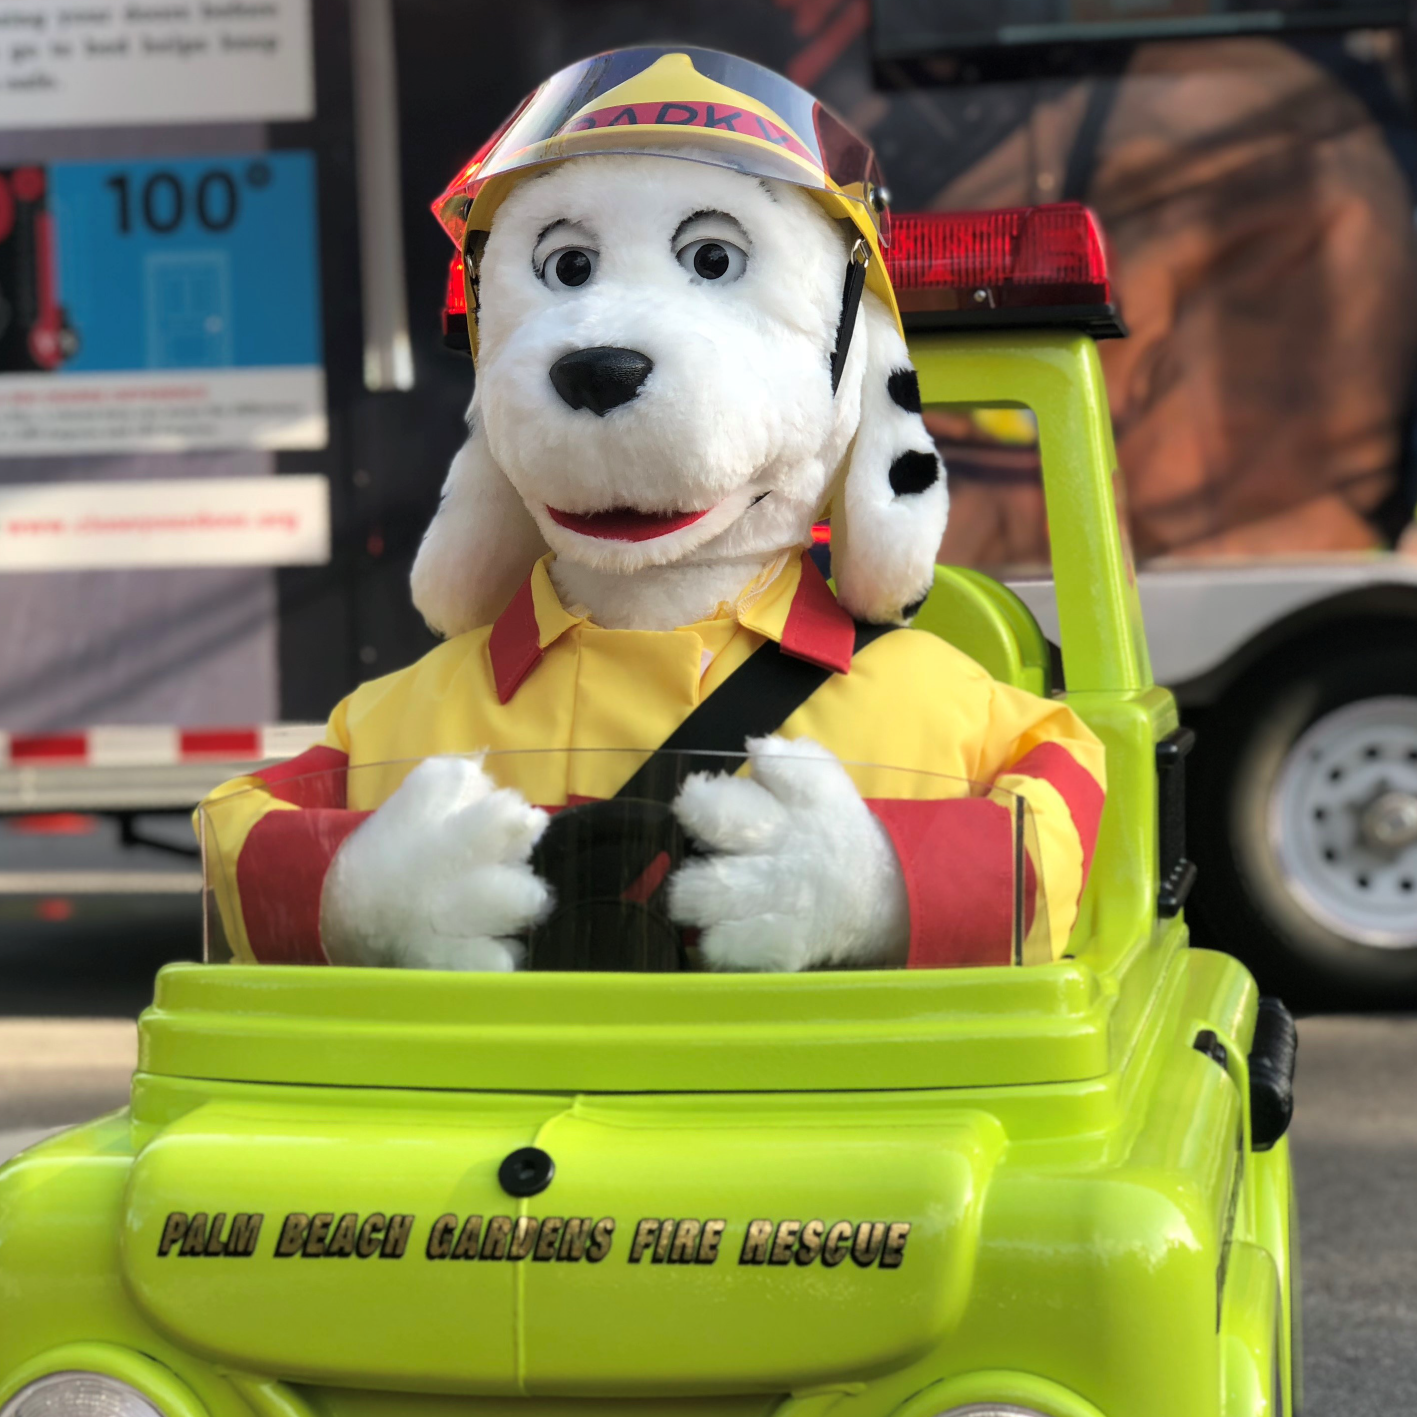 Sparky mascot in miniature fire engine